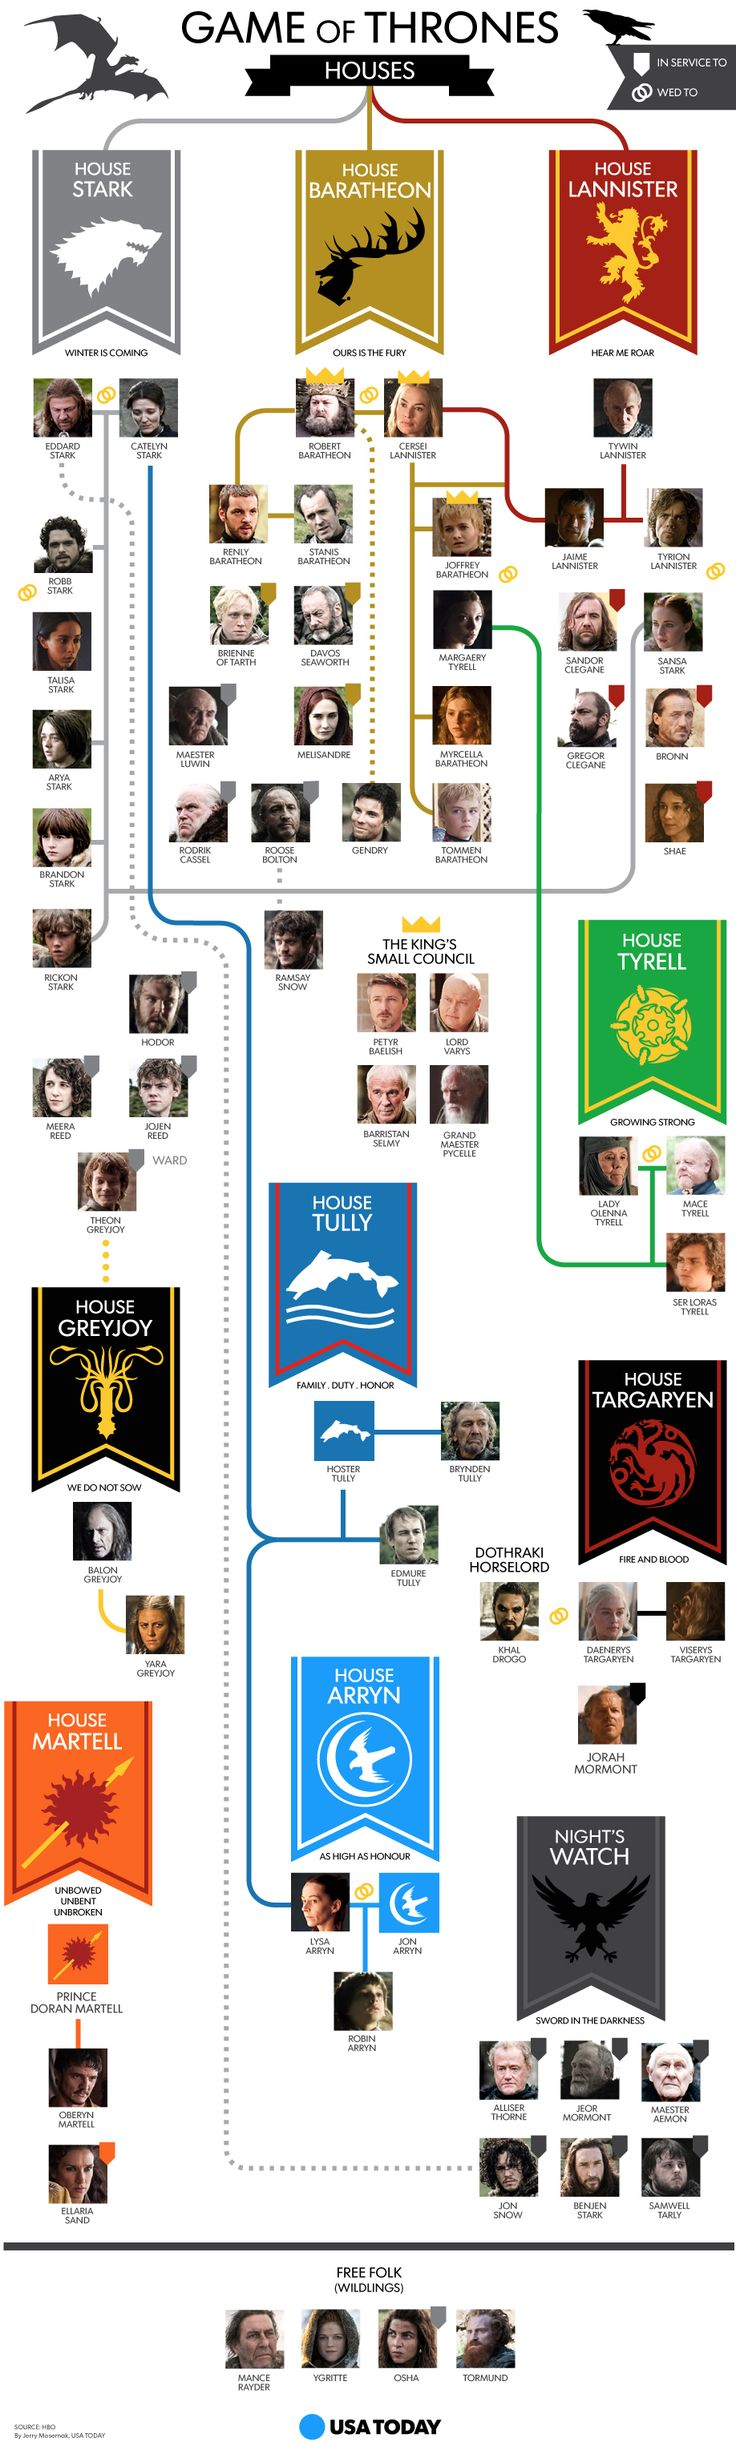 25 best ideas about jorah game of thrones on pinterest game of - Game Thrones Cast